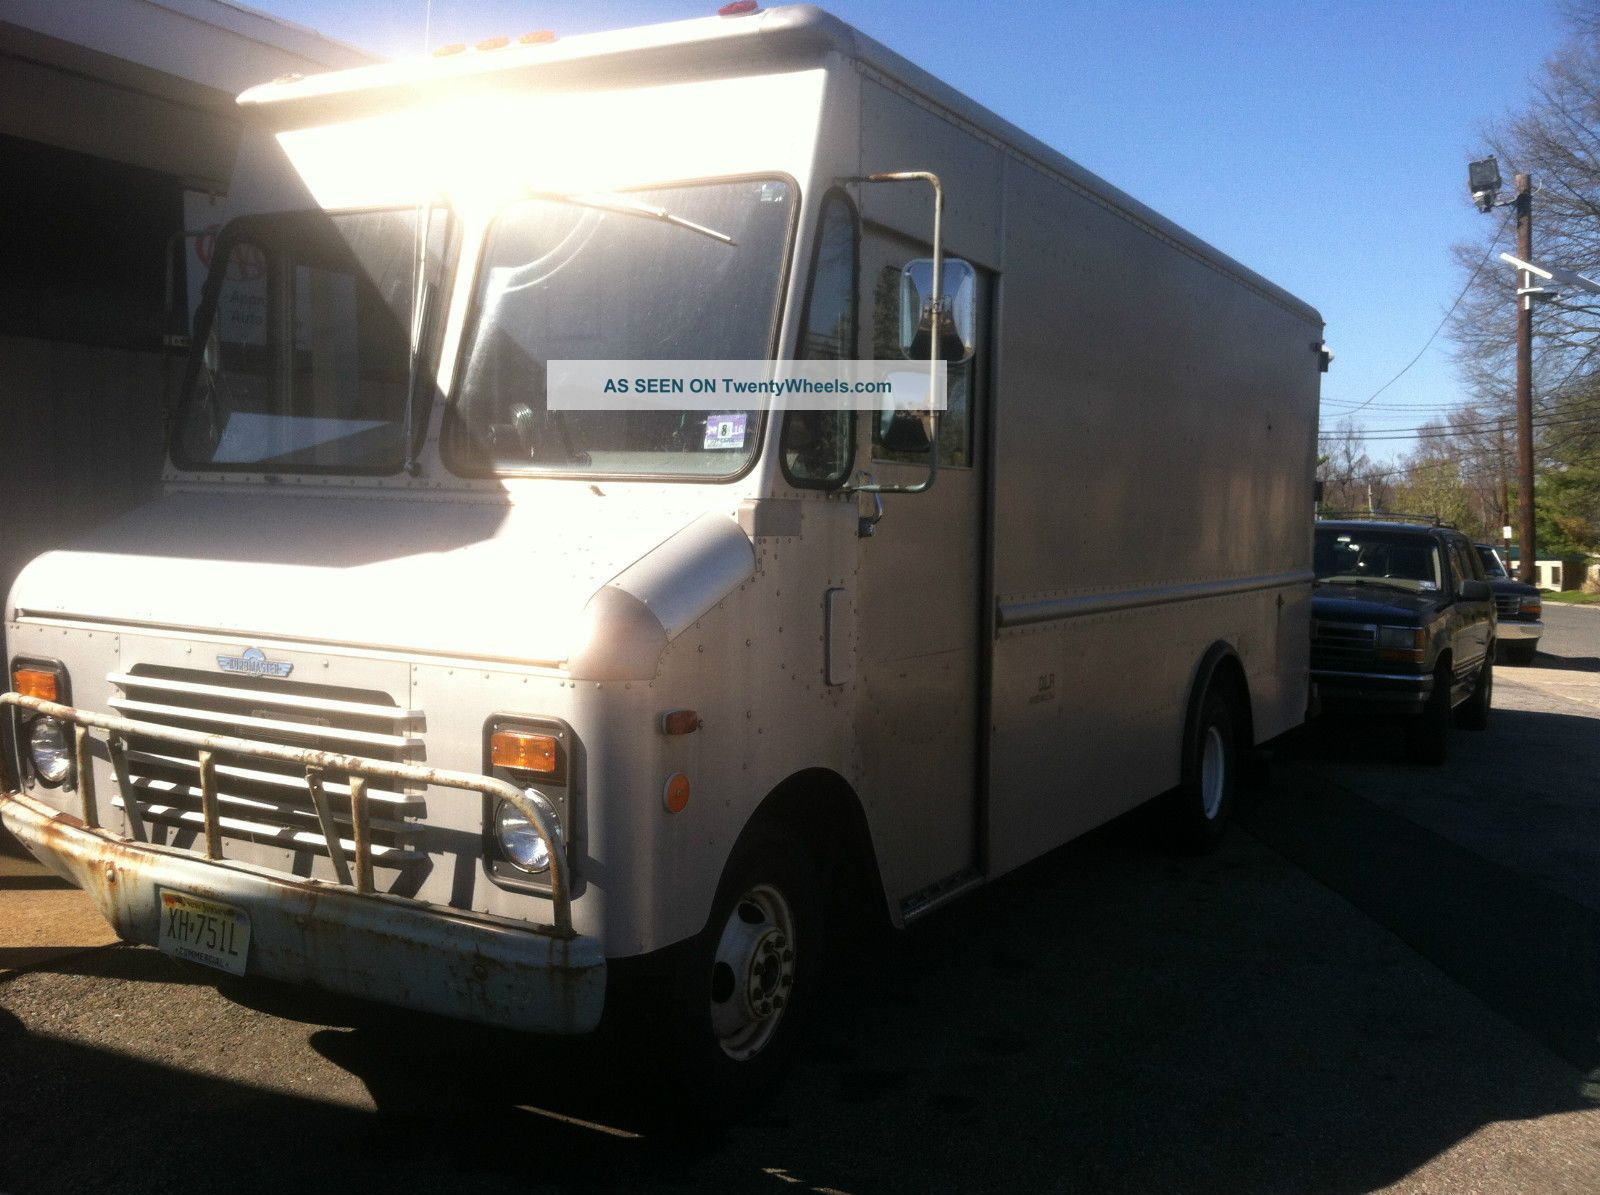 1989 Chevrolet Grumman P30 Step Vans photo